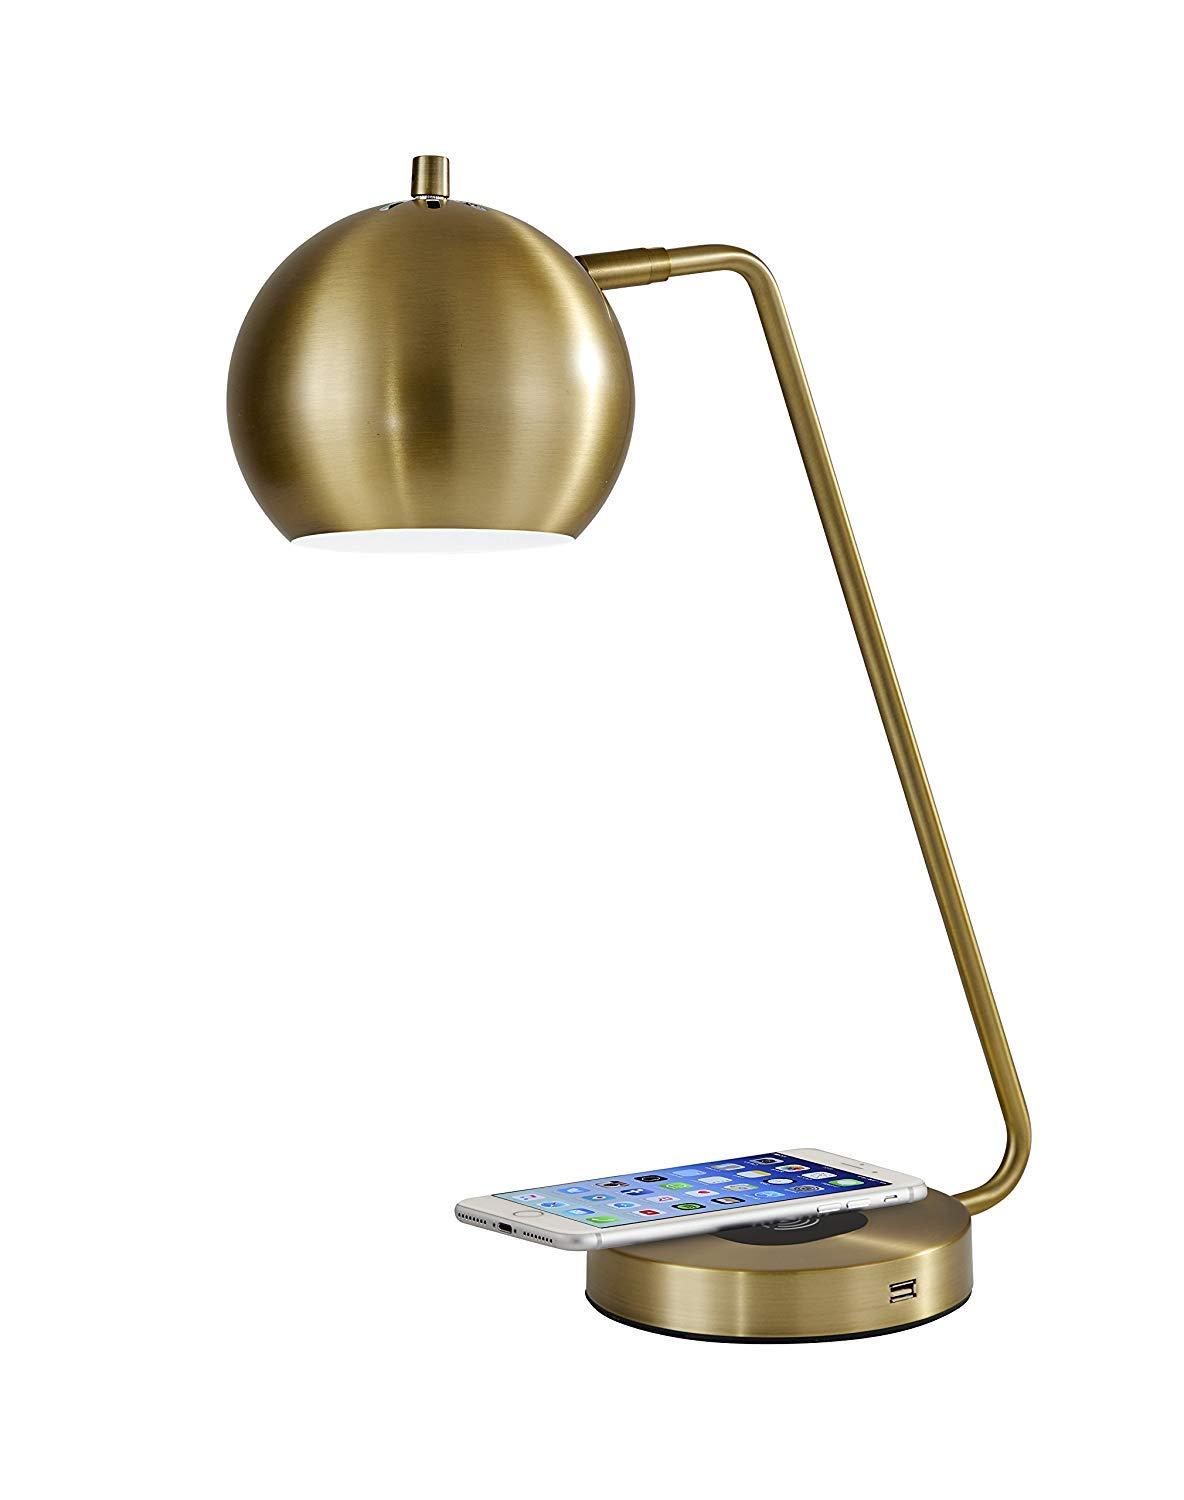 Adesso 5131-21 Emerson Desk Lamp WirelessCharging, 7W LED, 5W QI,USB Port, Indoor Lighting Lamps by Adesso